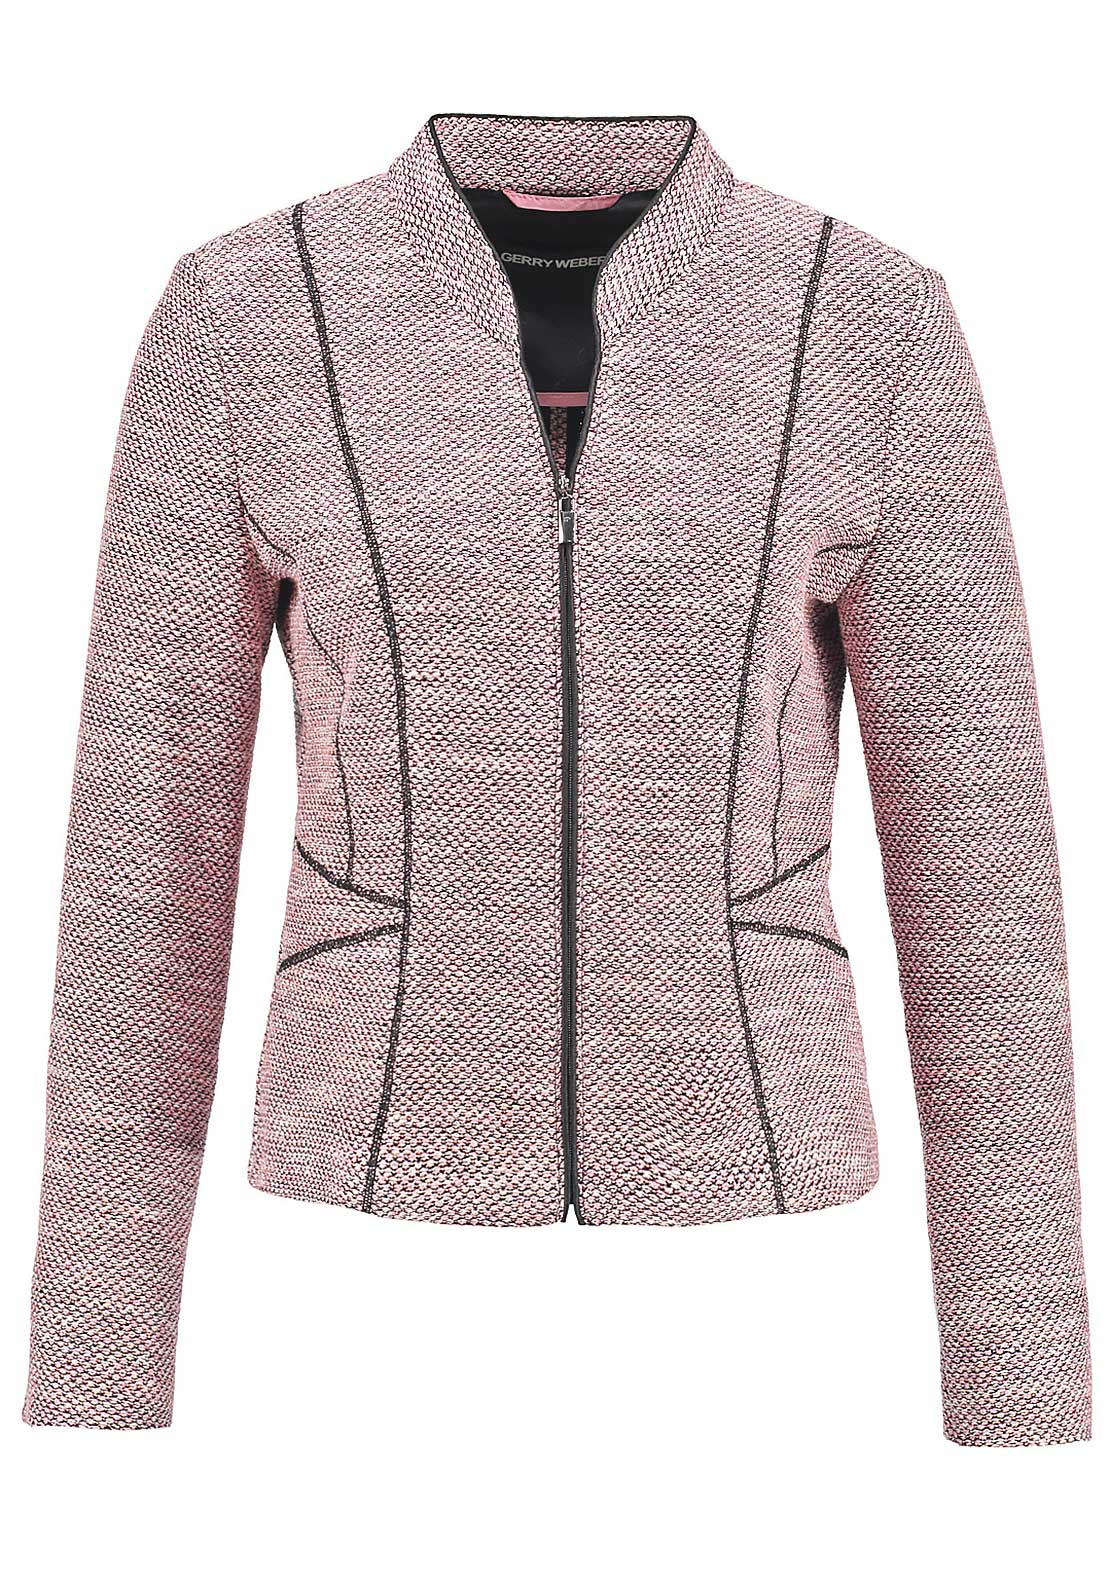 Gerry Weber Boucle Zip Front Jacket, Pink